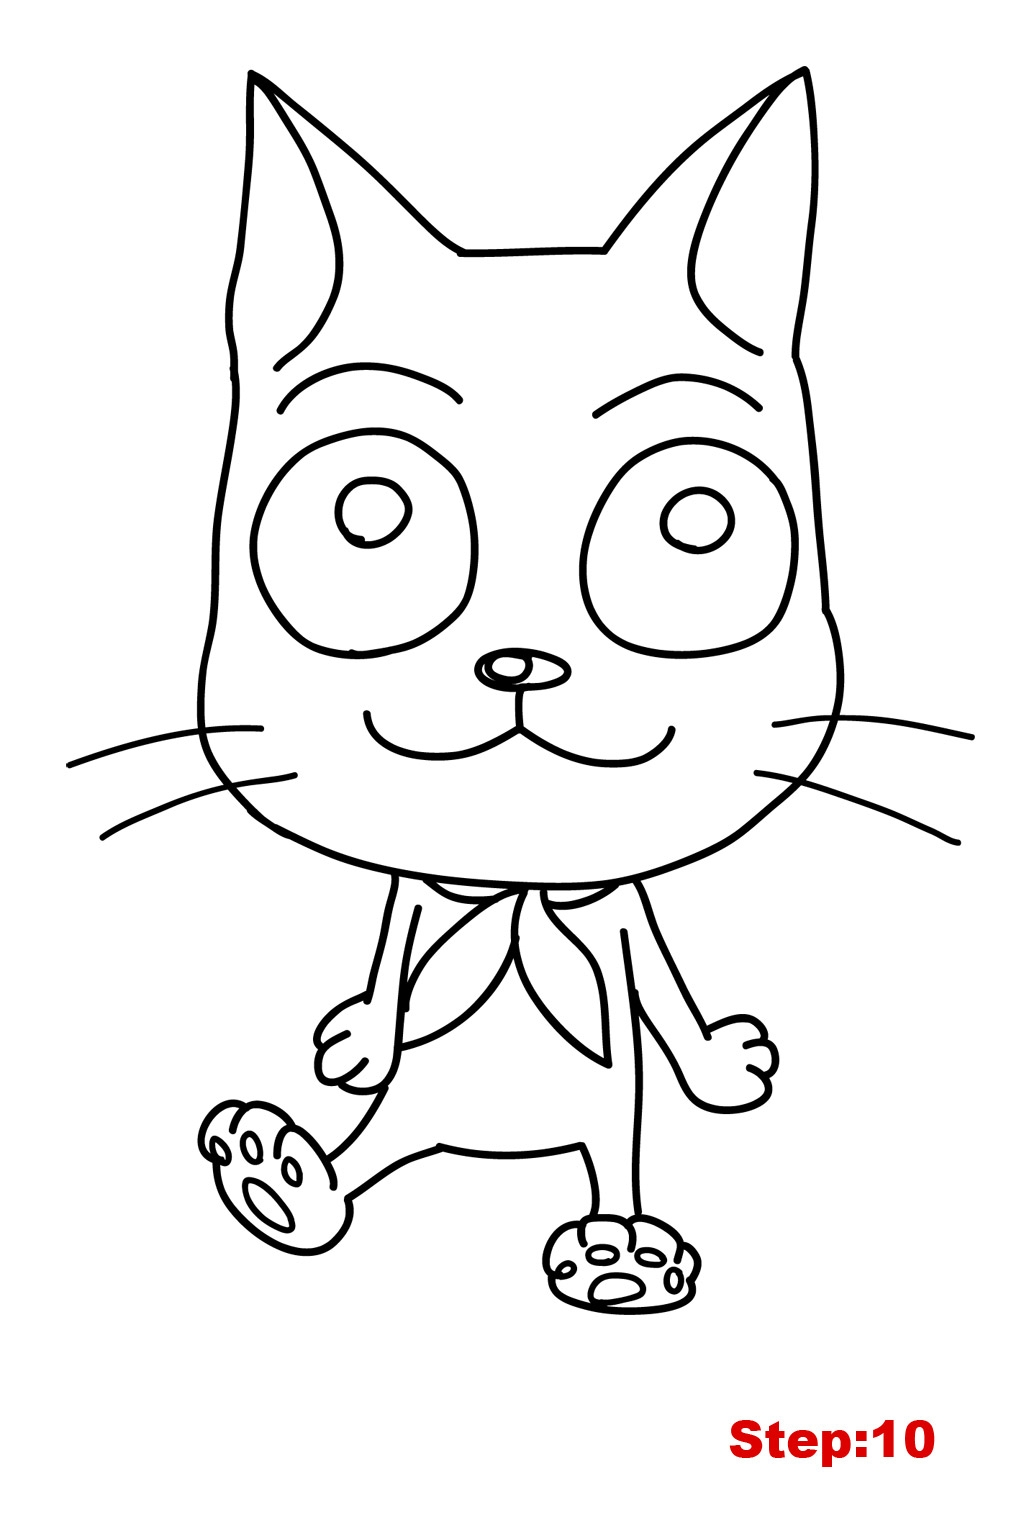 28 9 11 Coloring Pages Compilation Free Coloring Pages Part 2